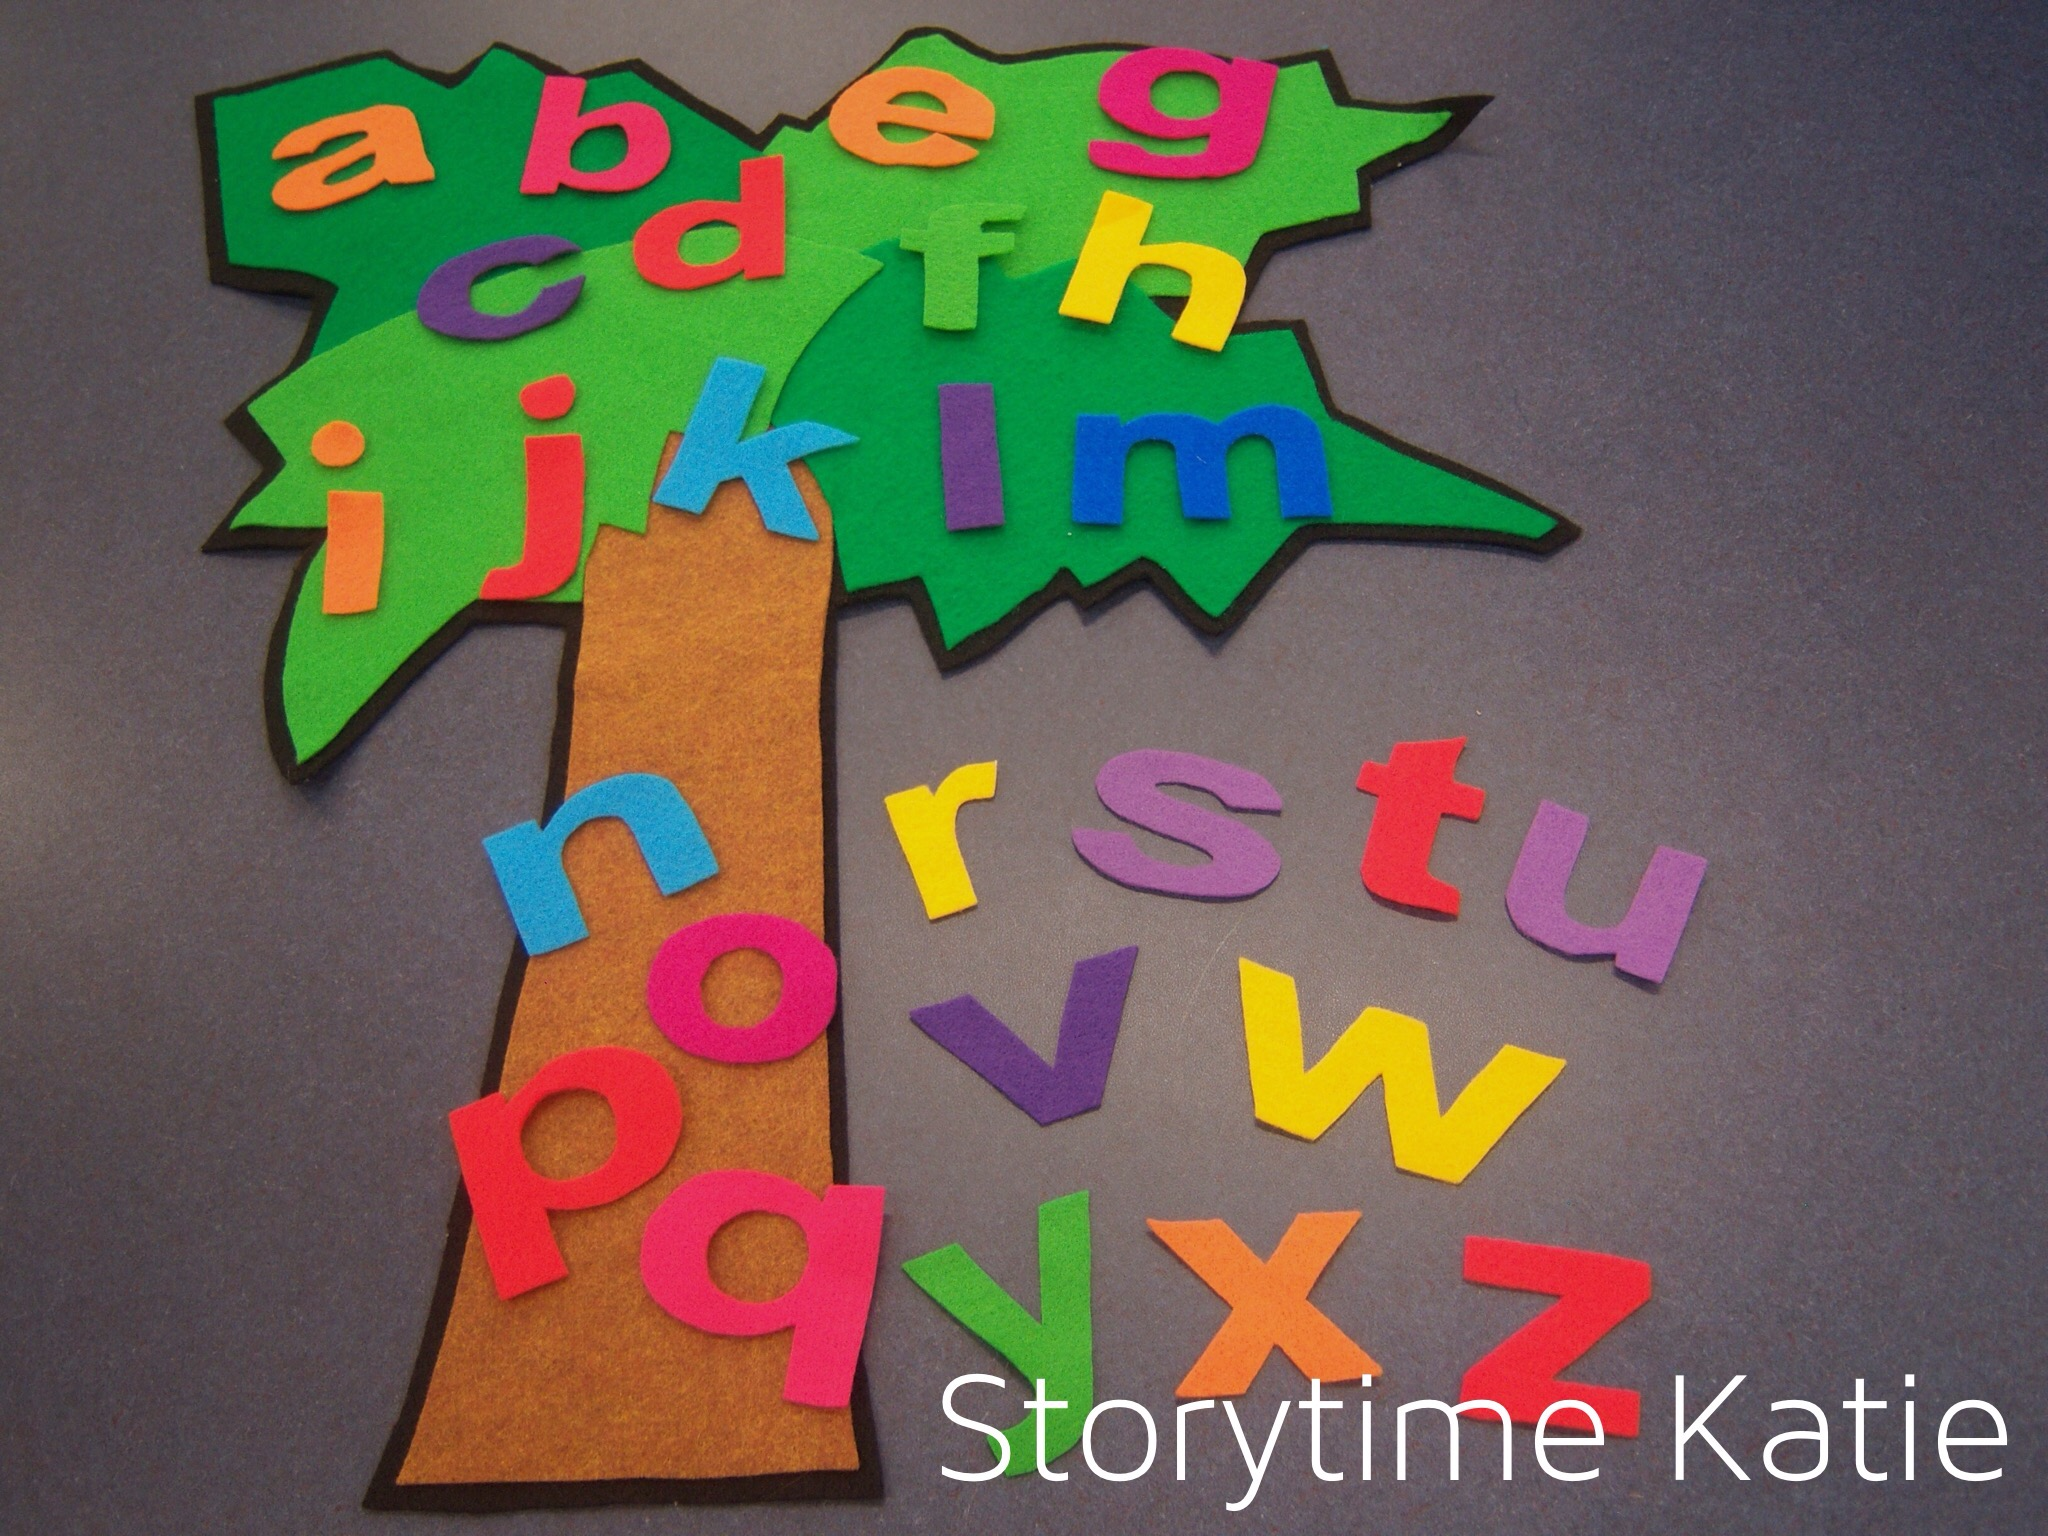 Flannel Friday: Chicka Chicka Boom Boom – storytime katie - photo#19